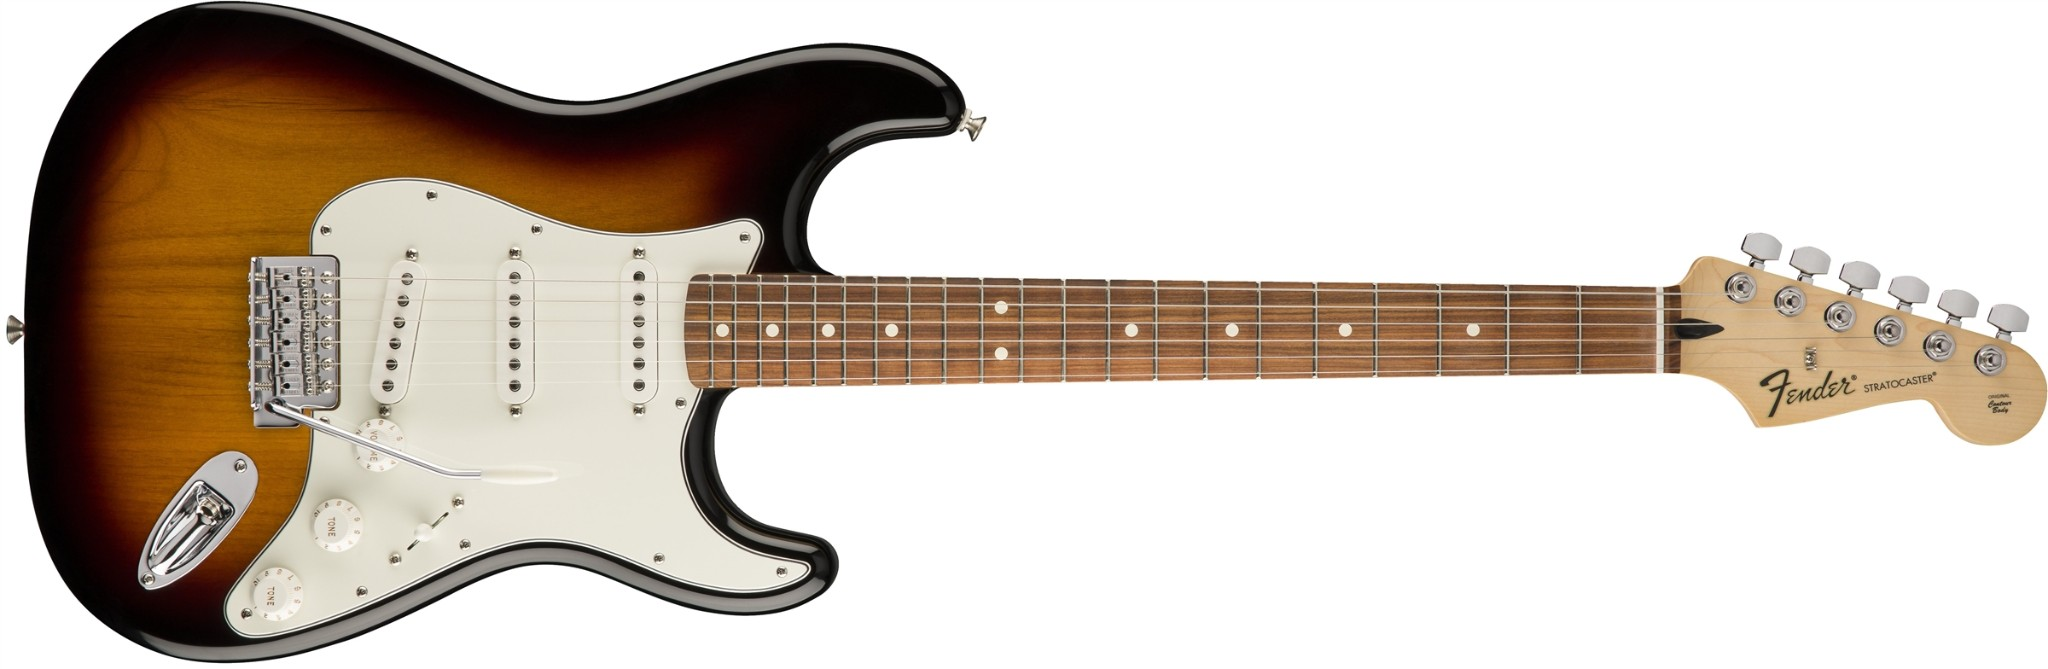 Fender Standard Stratocaster PF In Brown Sunburst